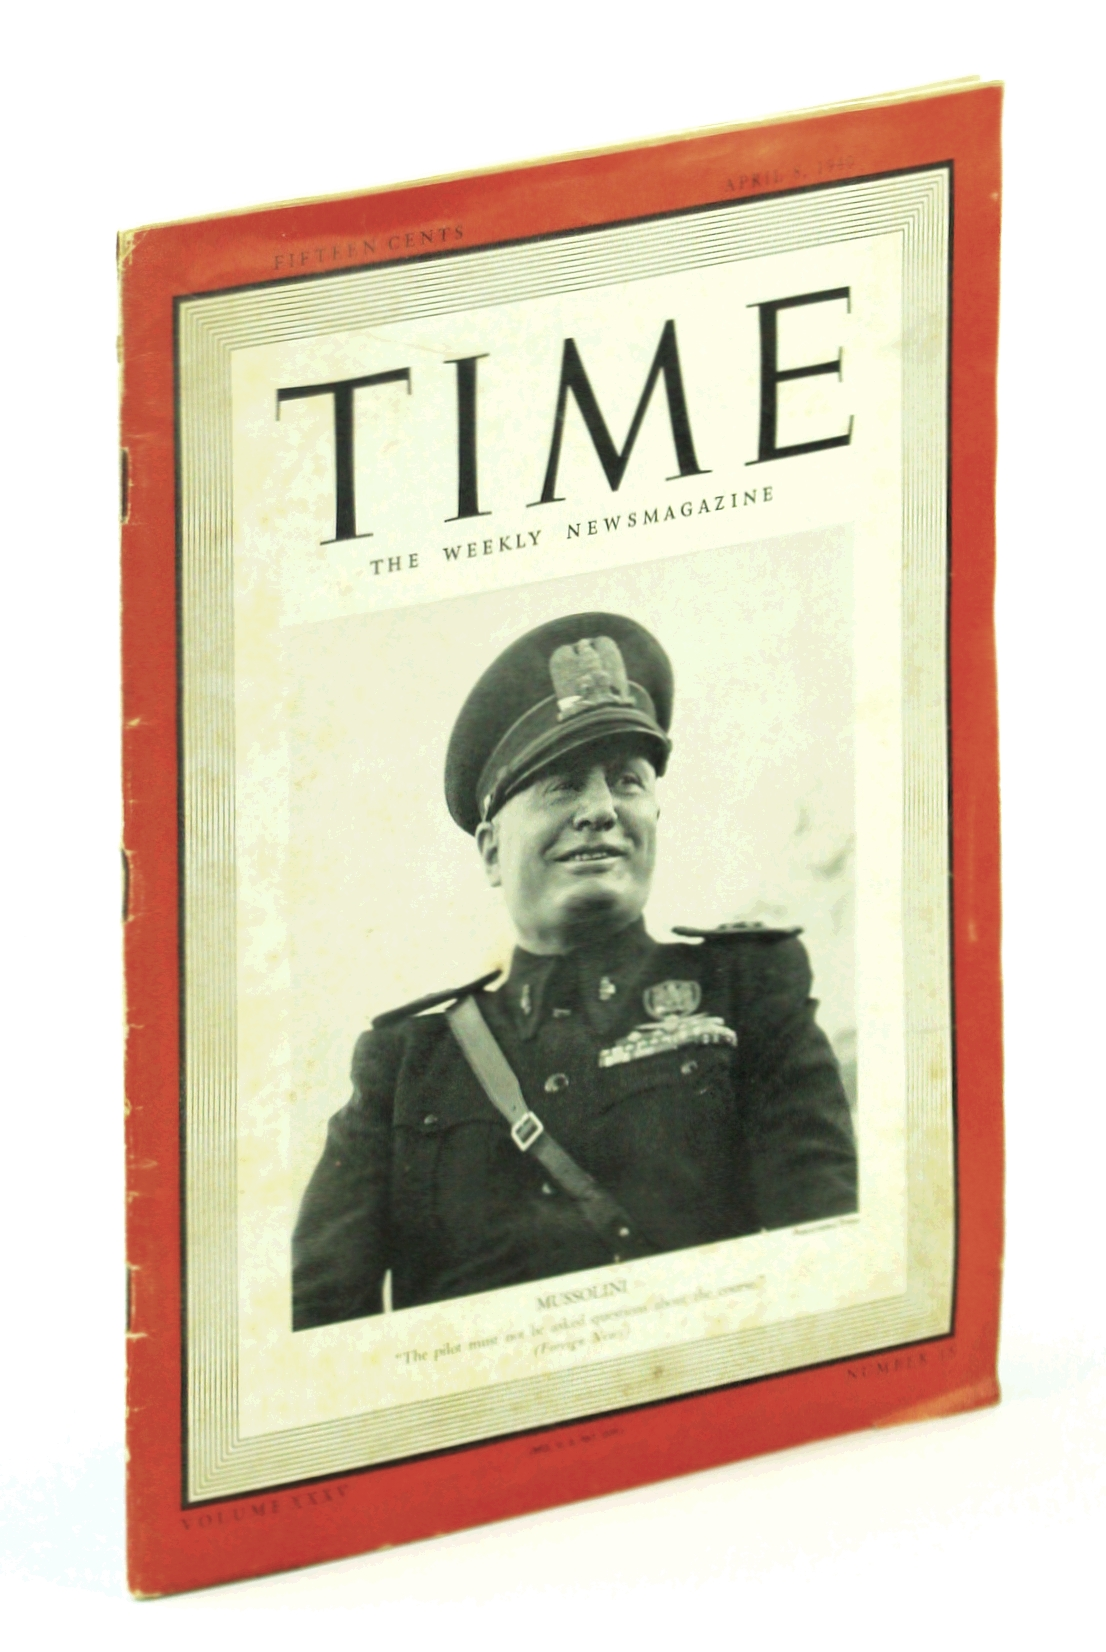 Image for Time - The Weekly News Magazine, April [Apr.] 8, 1940, Volume XXXV, Number 15: Benito Mussolini Cover Portrait